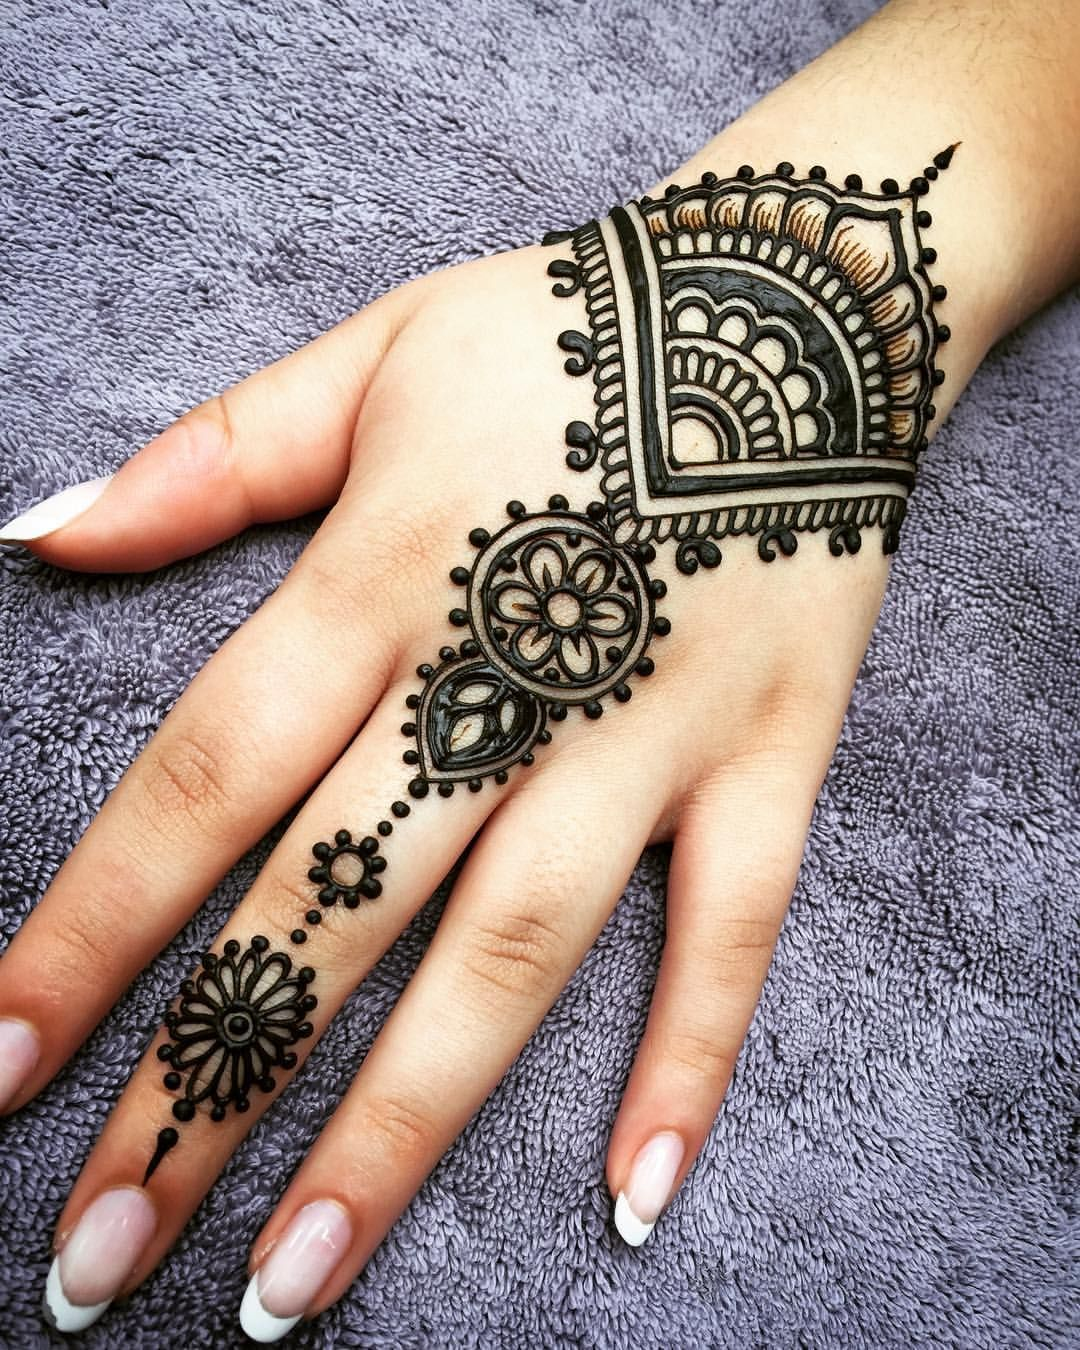 220 Easy Mehndi Designs For Left Hand Right Hand Front Hand Back Hand 2020,Simple Ceiling Corner Design With Cement